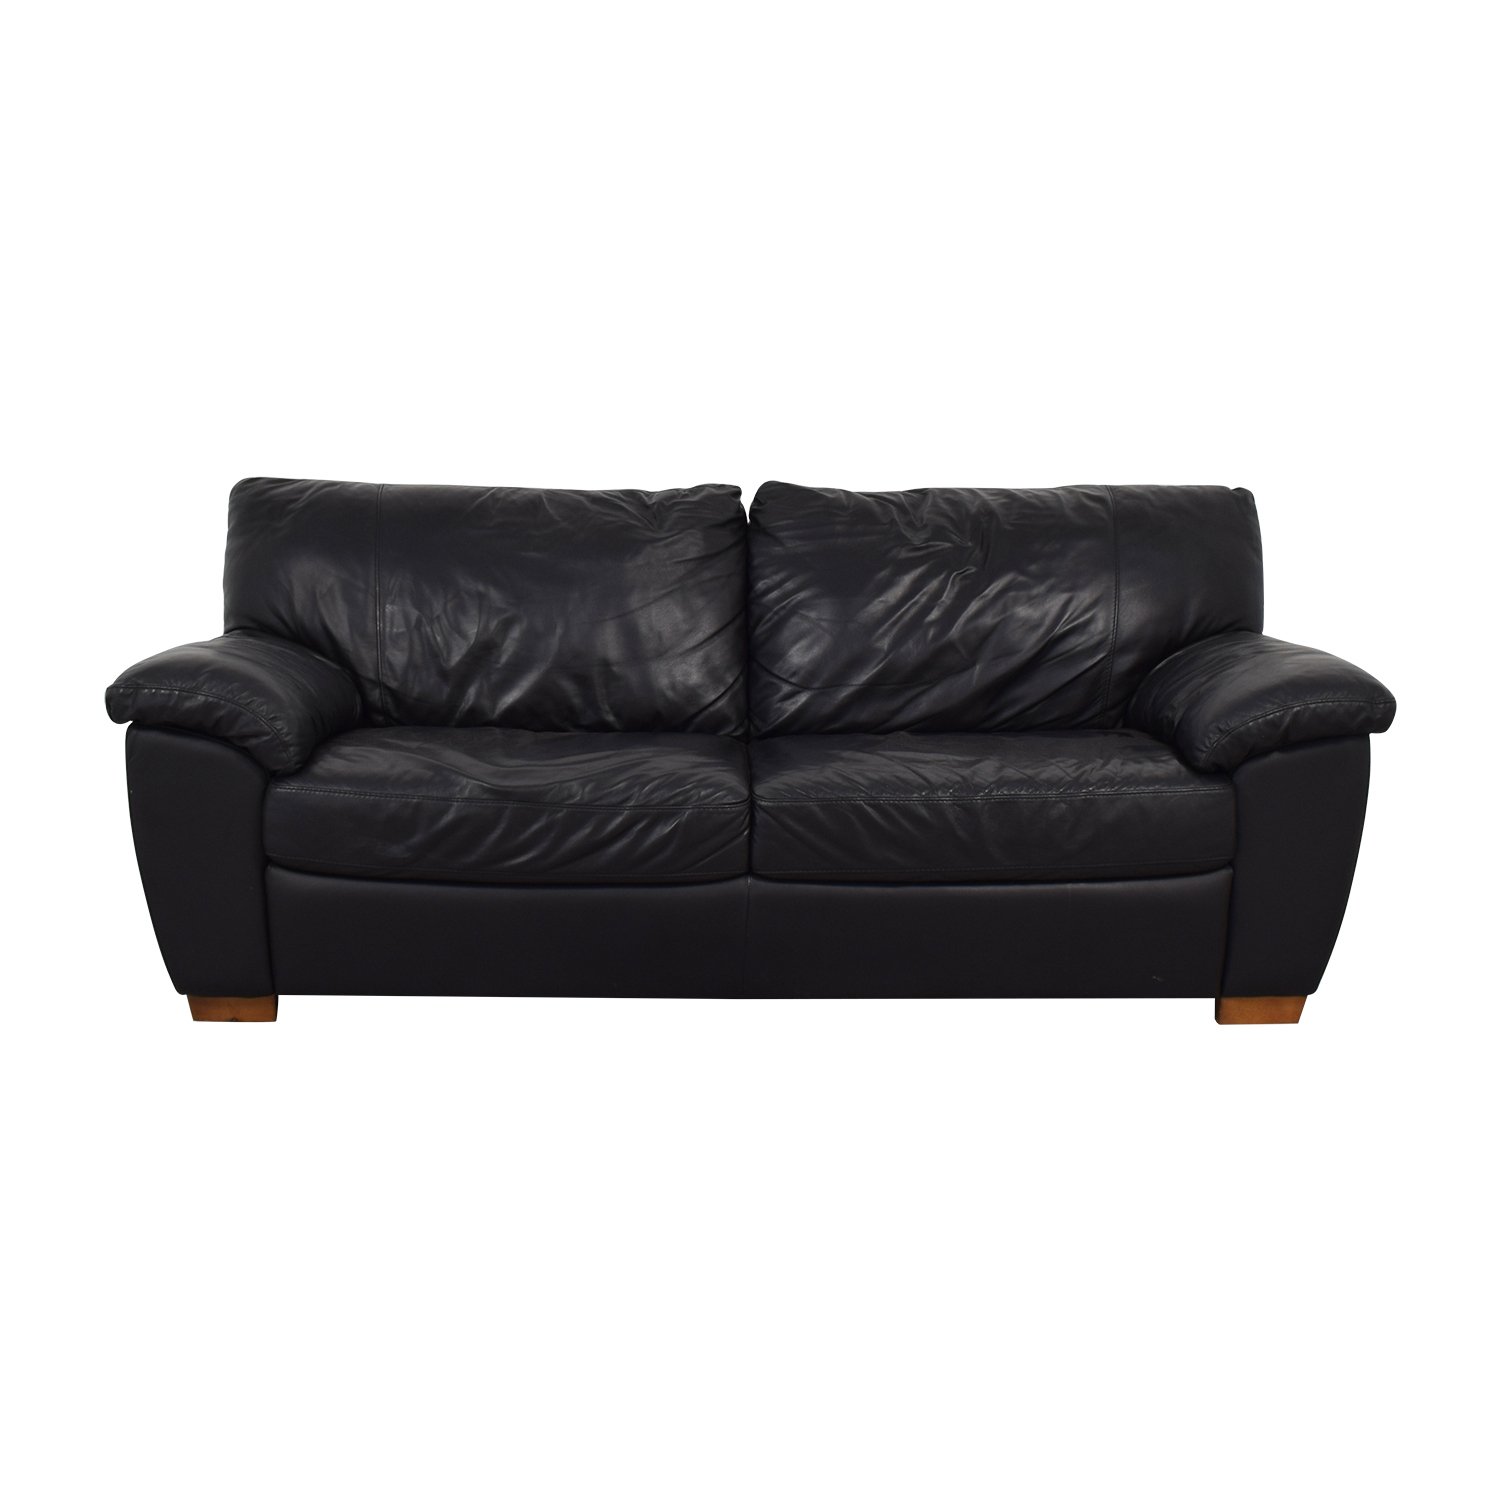 IKEA IKEA Vreta Black Leather Two-Cushion Sofa on sale